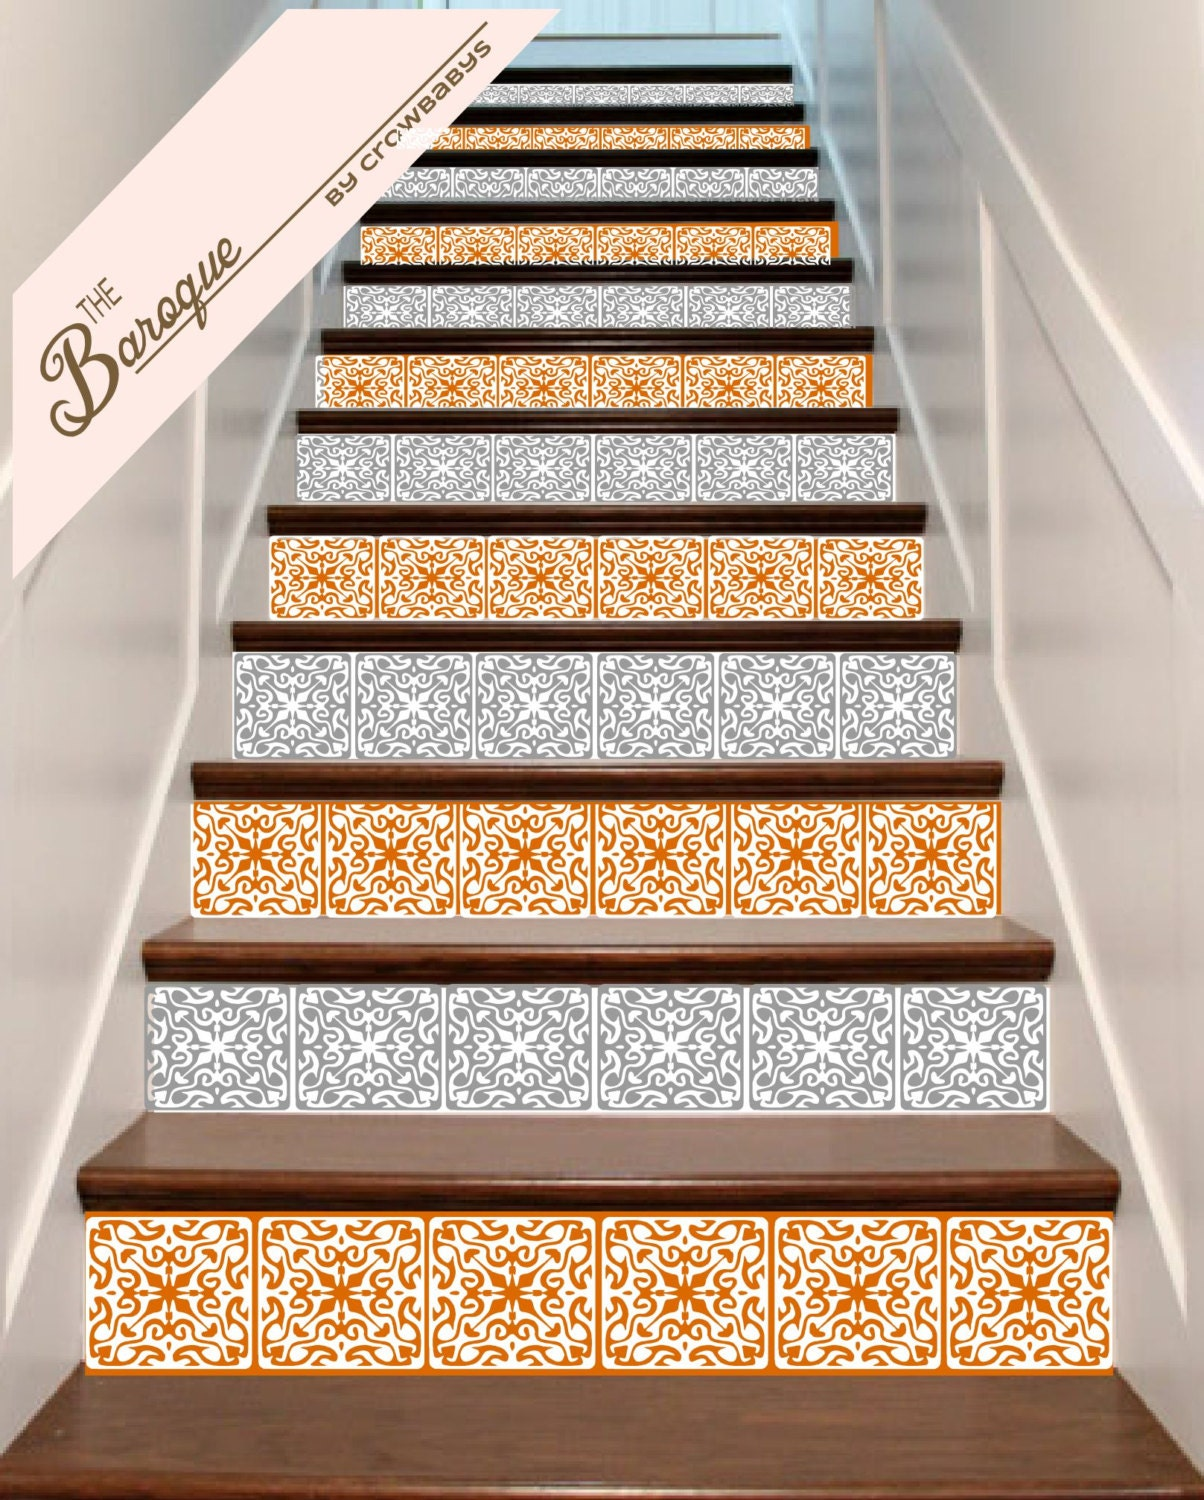 ornate vinyl tile decals for stair risers order as by. Black Bedroom Furniture Sets. Home Design Ideas